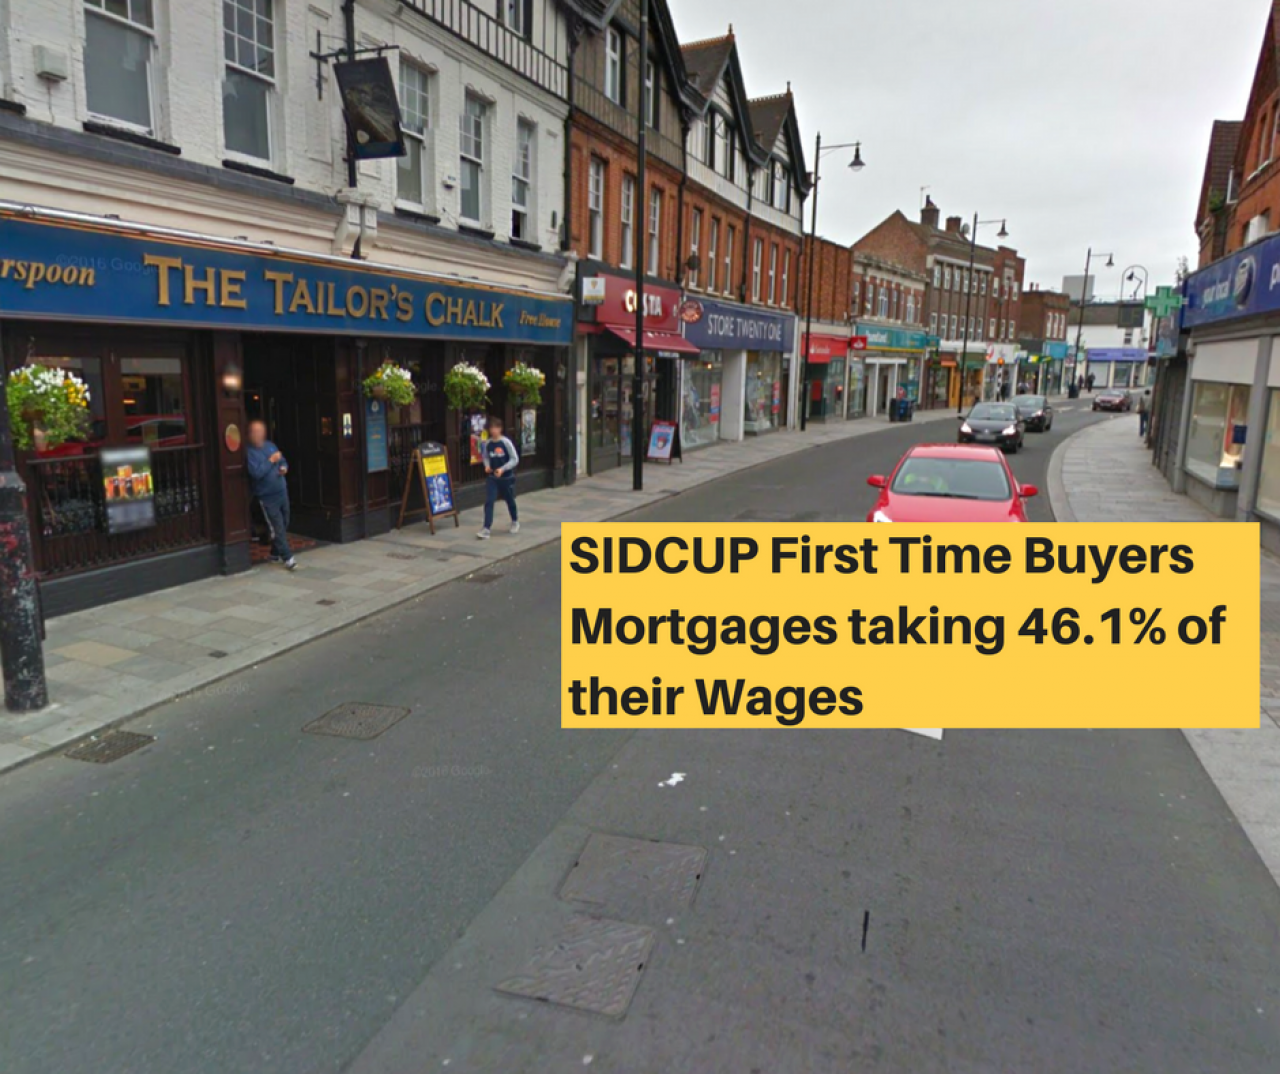 >Sidcup First Time Buyers M...